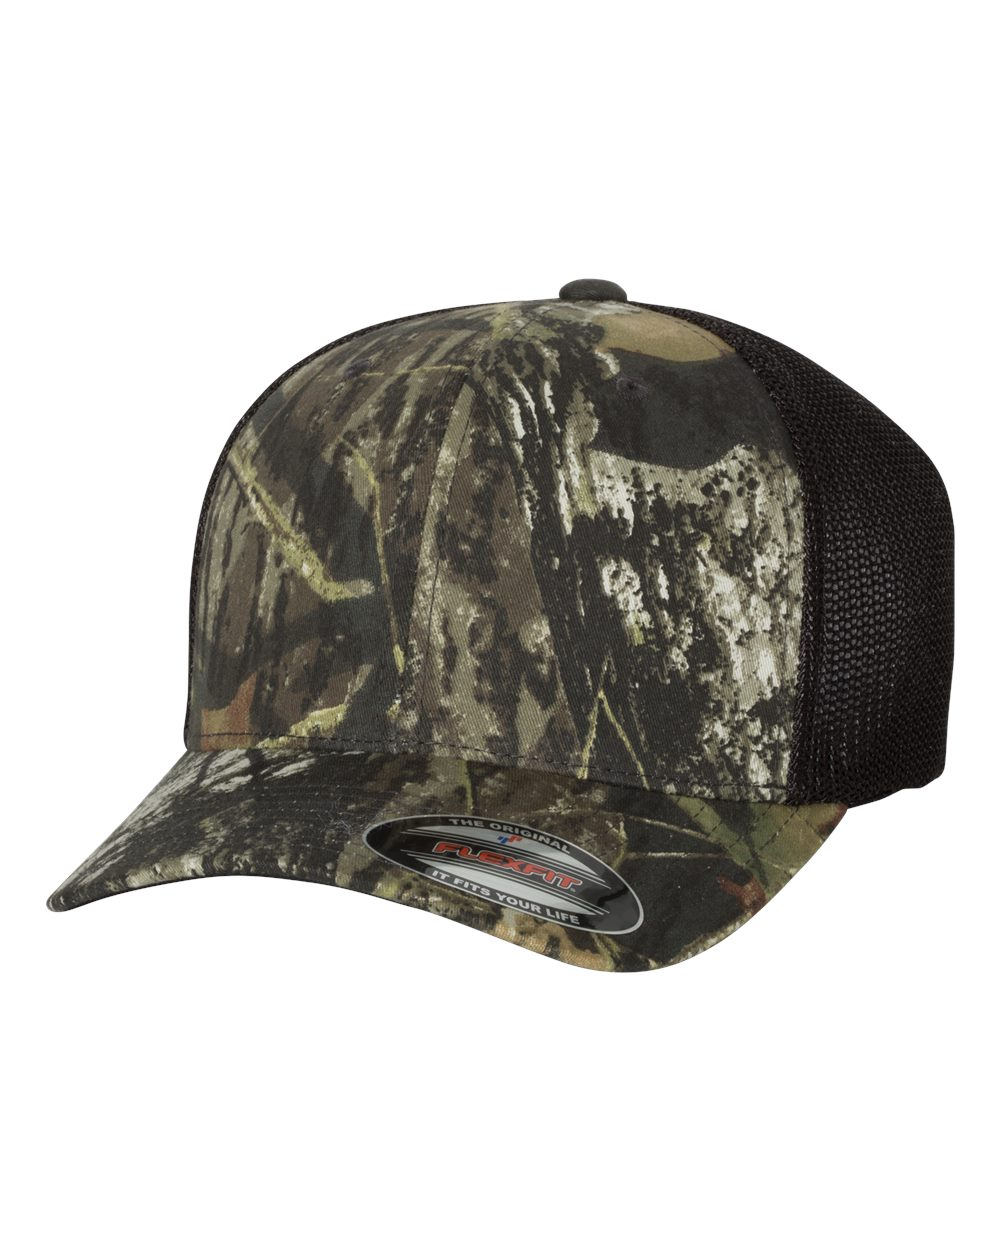 Flexfit 6911 - Mossy Oak Stretch Mesh Cap